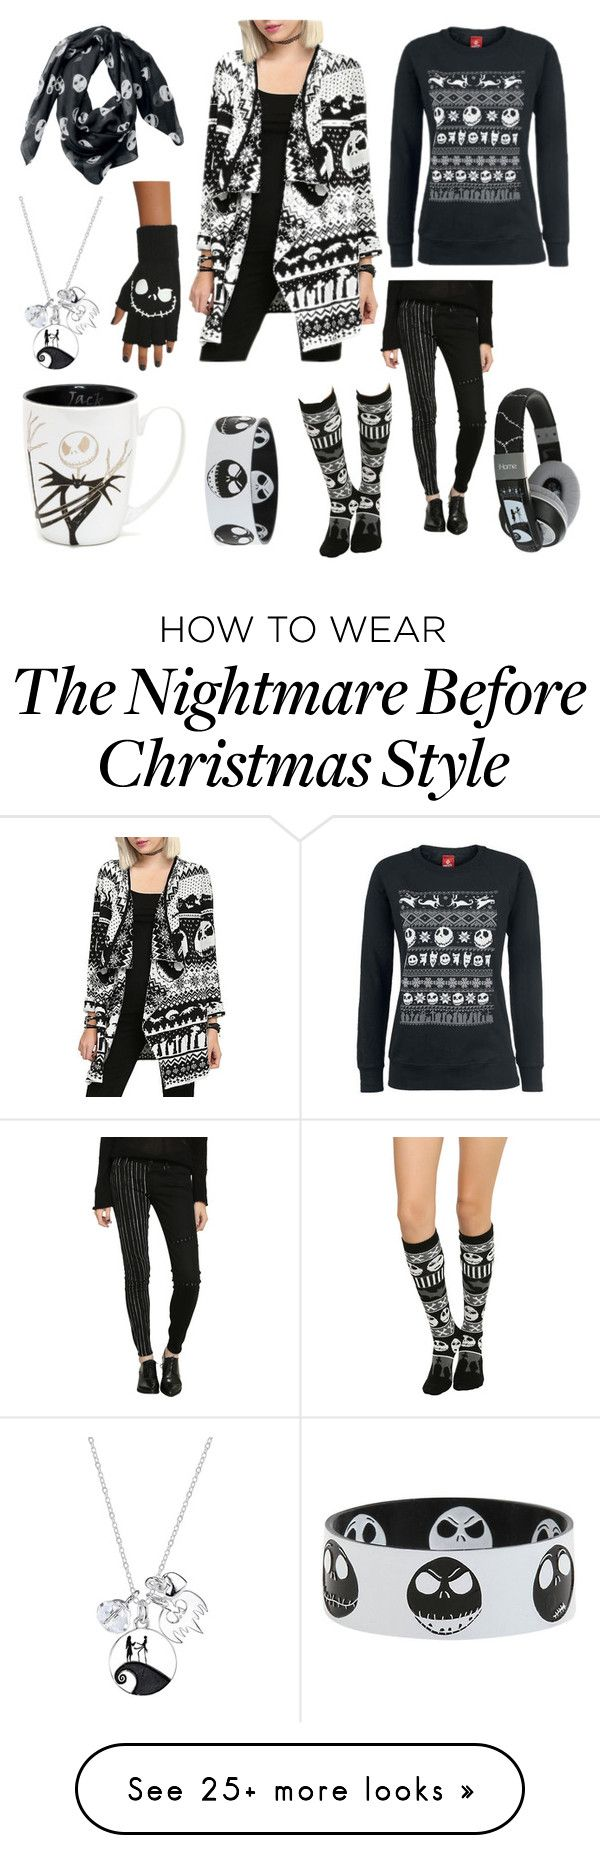 best 25 before christmas ideas on pinterest nightmare before